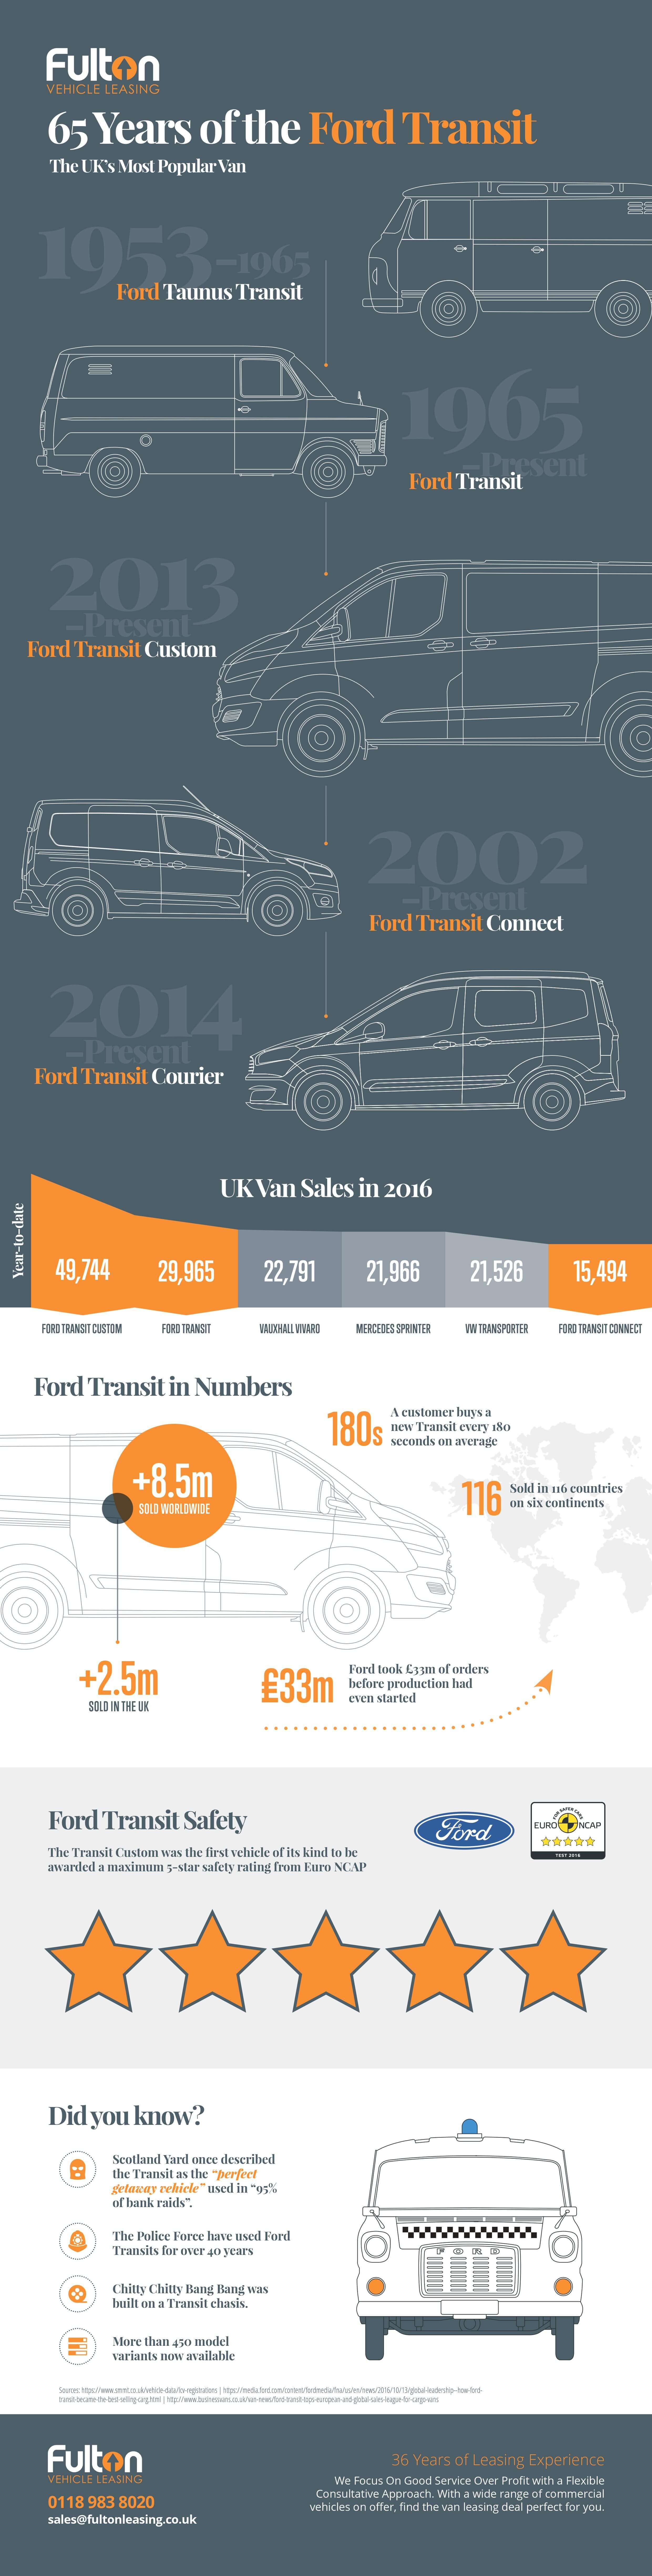 65 Years Young Ford Transit S Evolution Infographic Milwaukee Map Social Media Infographic